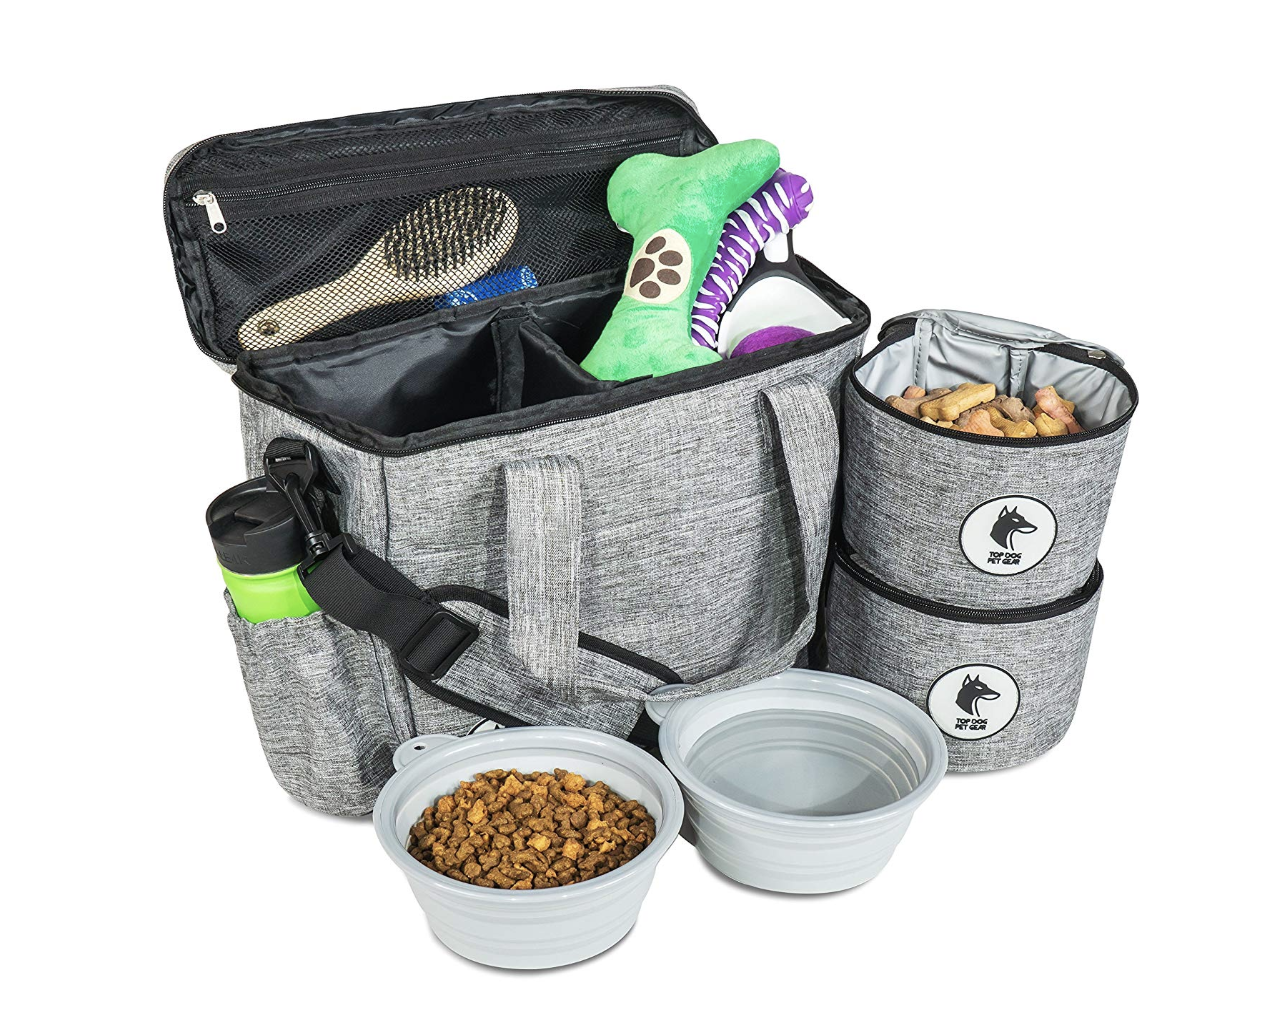 Top Dog Pet Gear - Airline Approved Travel Set for Dogs